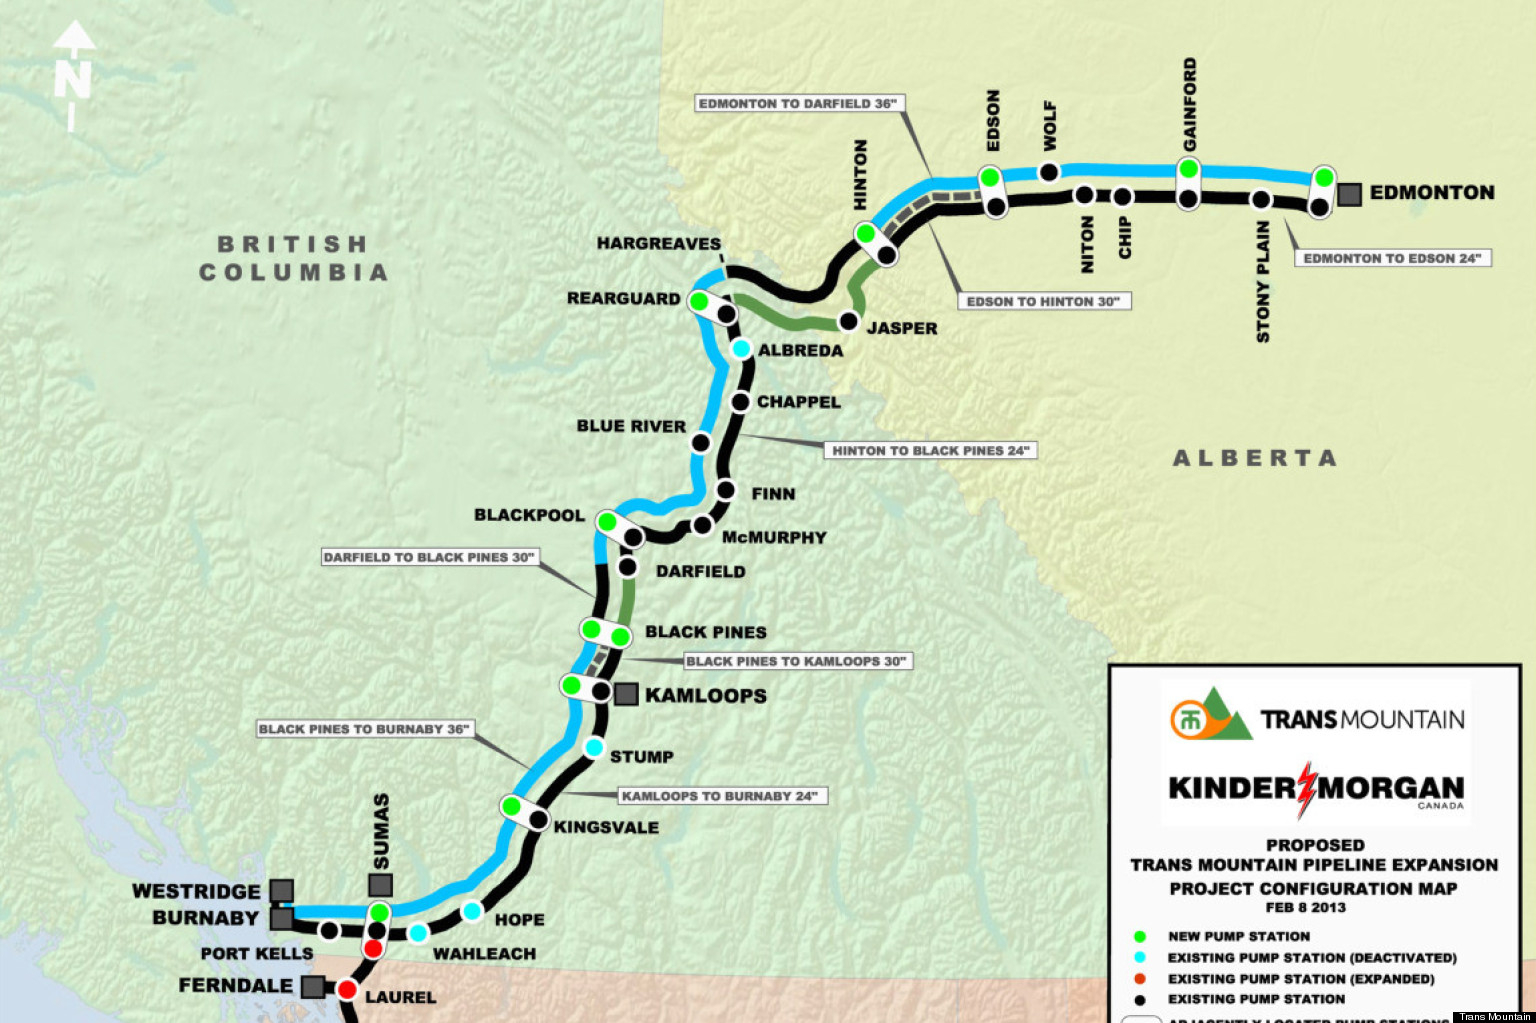 Canadian Trans Mountain Piepline Map